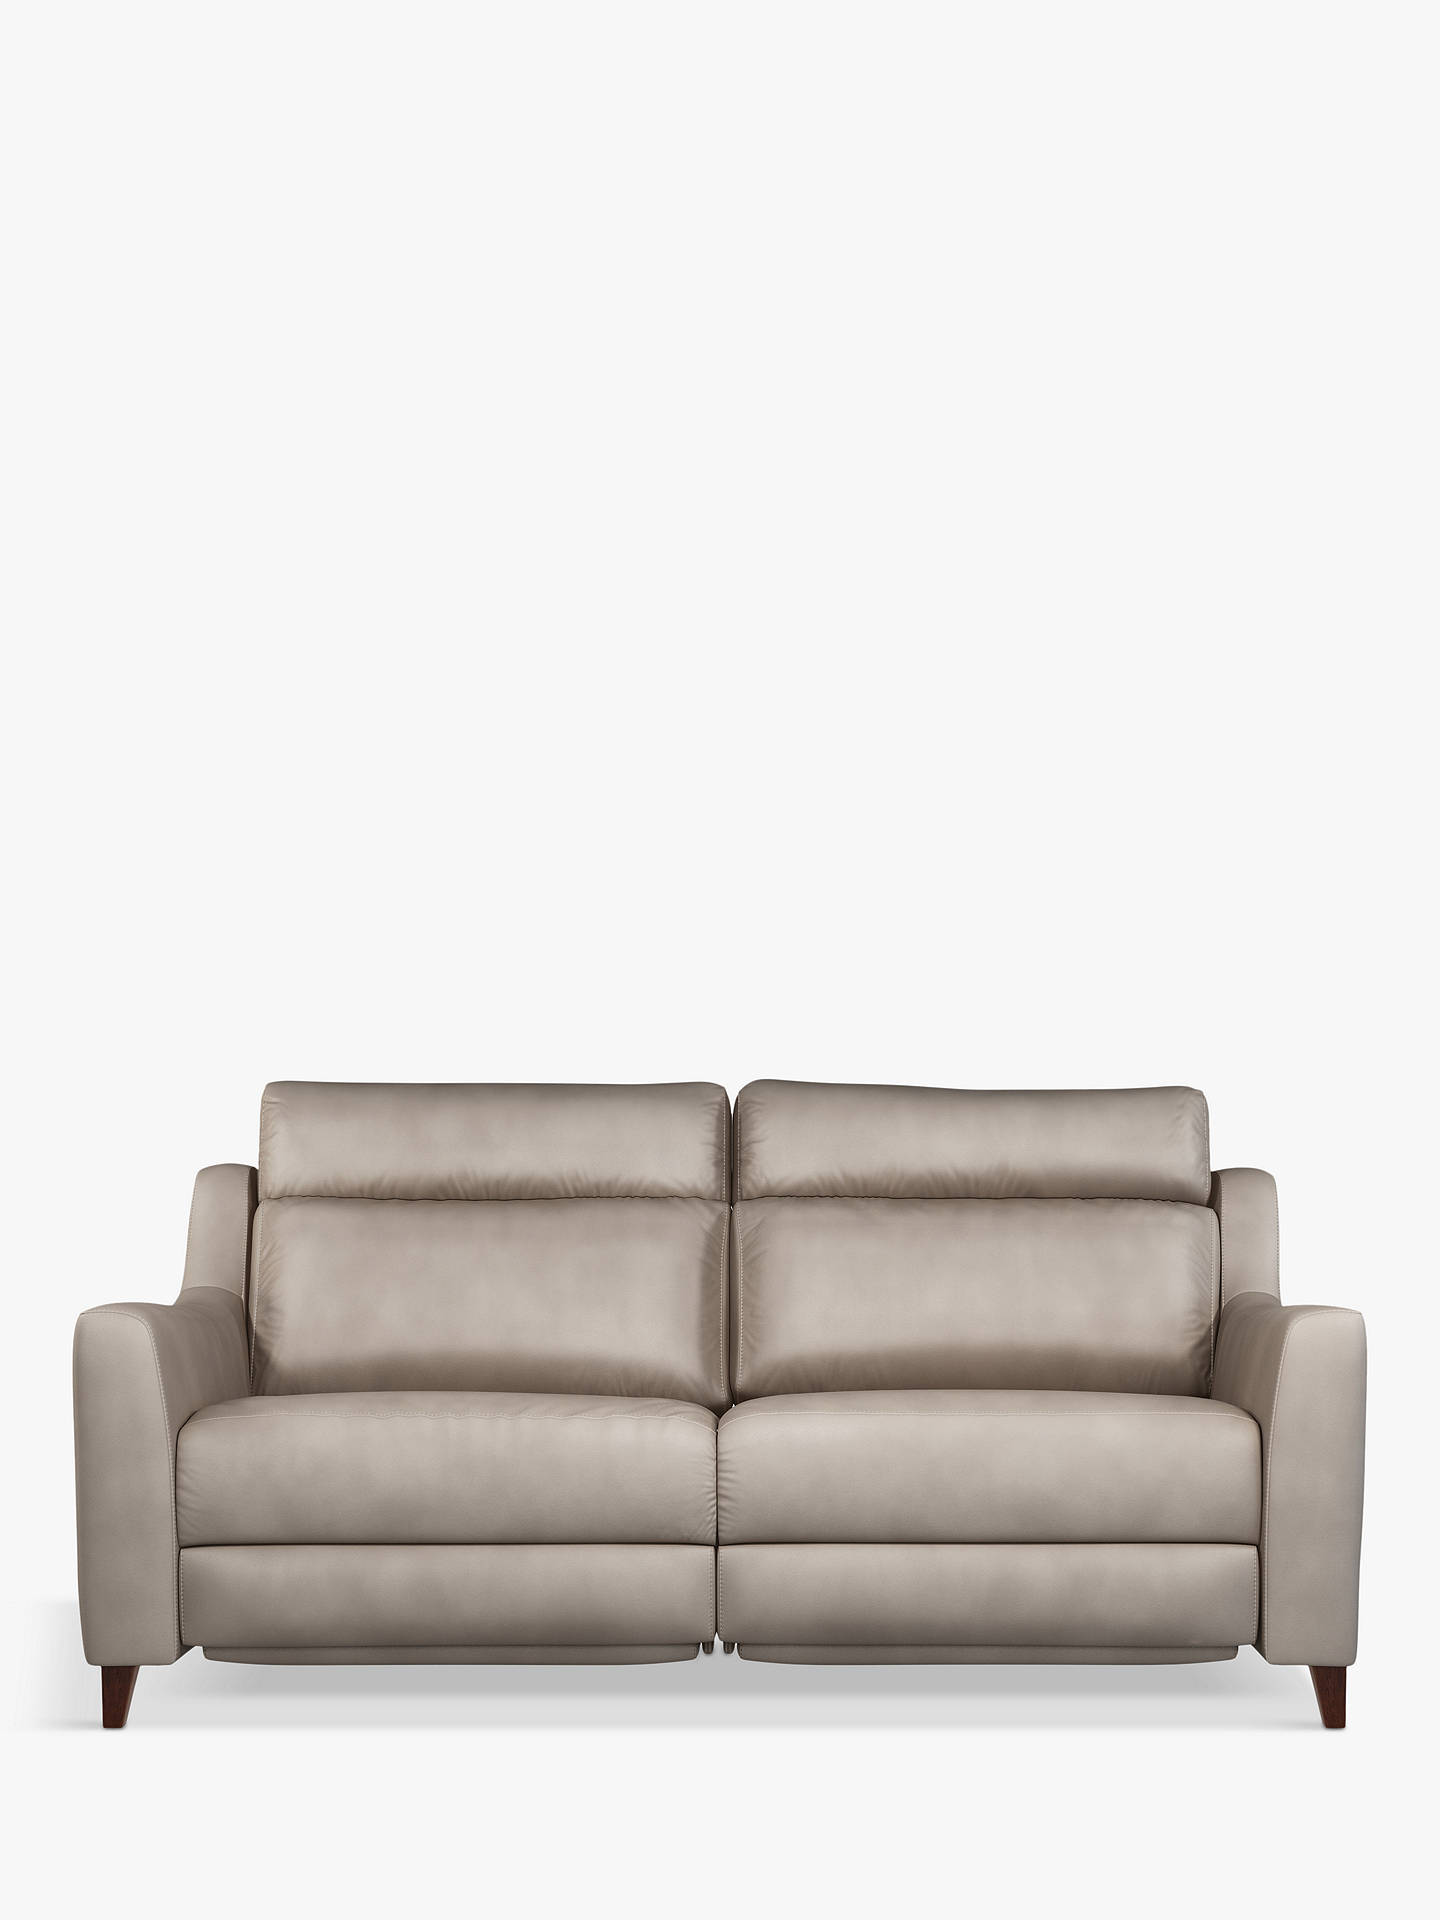 Buy John Lewis & Partners Camber Grand 4 Seater Leather Sofa, Dark Leg, Demetra Charcoal Online at johnlewis.com